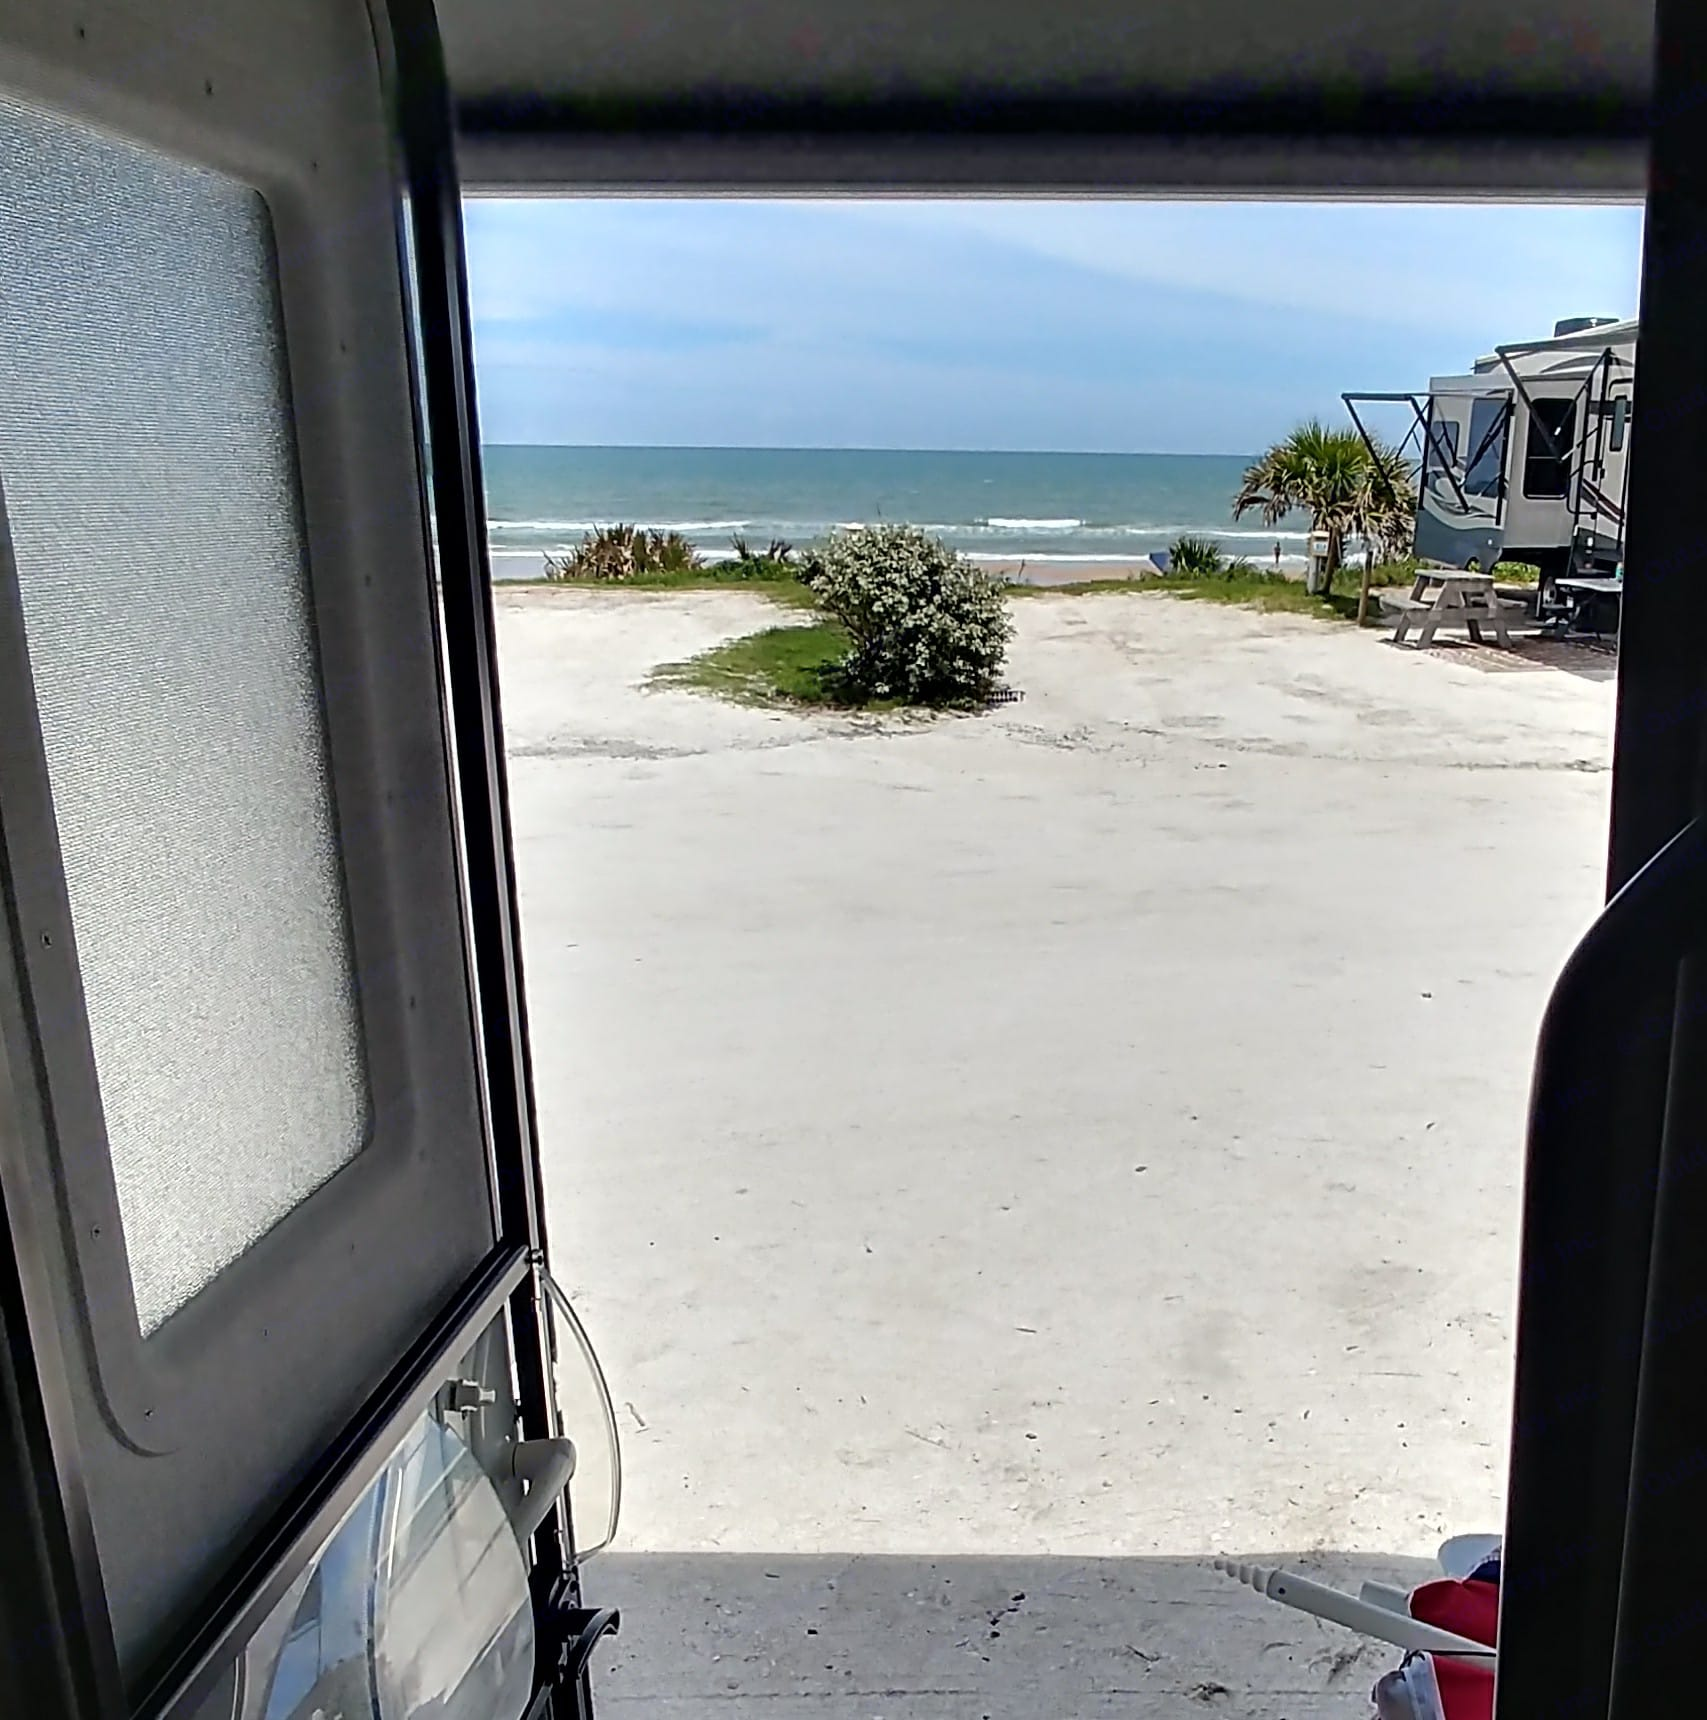 This was our view in Ormand Beach for 3 nights this Summer. Awesome. Thor Motor Coach Chateau 2017